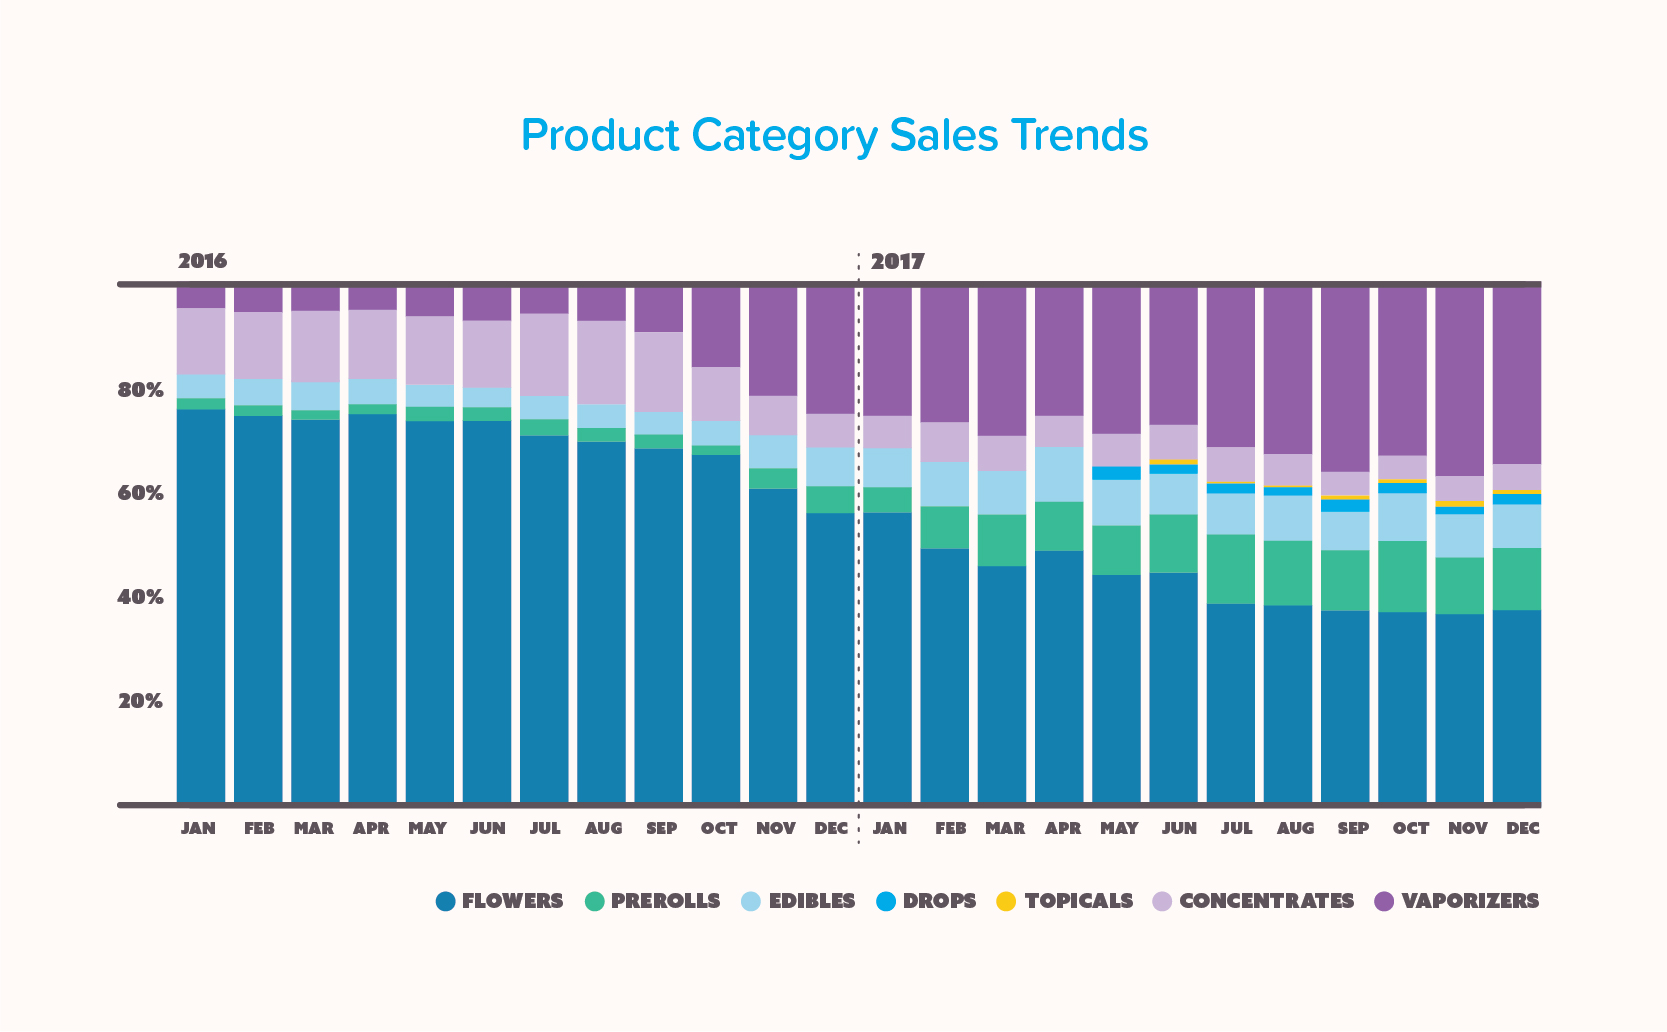 Infographic showing marijuana product category sales trends